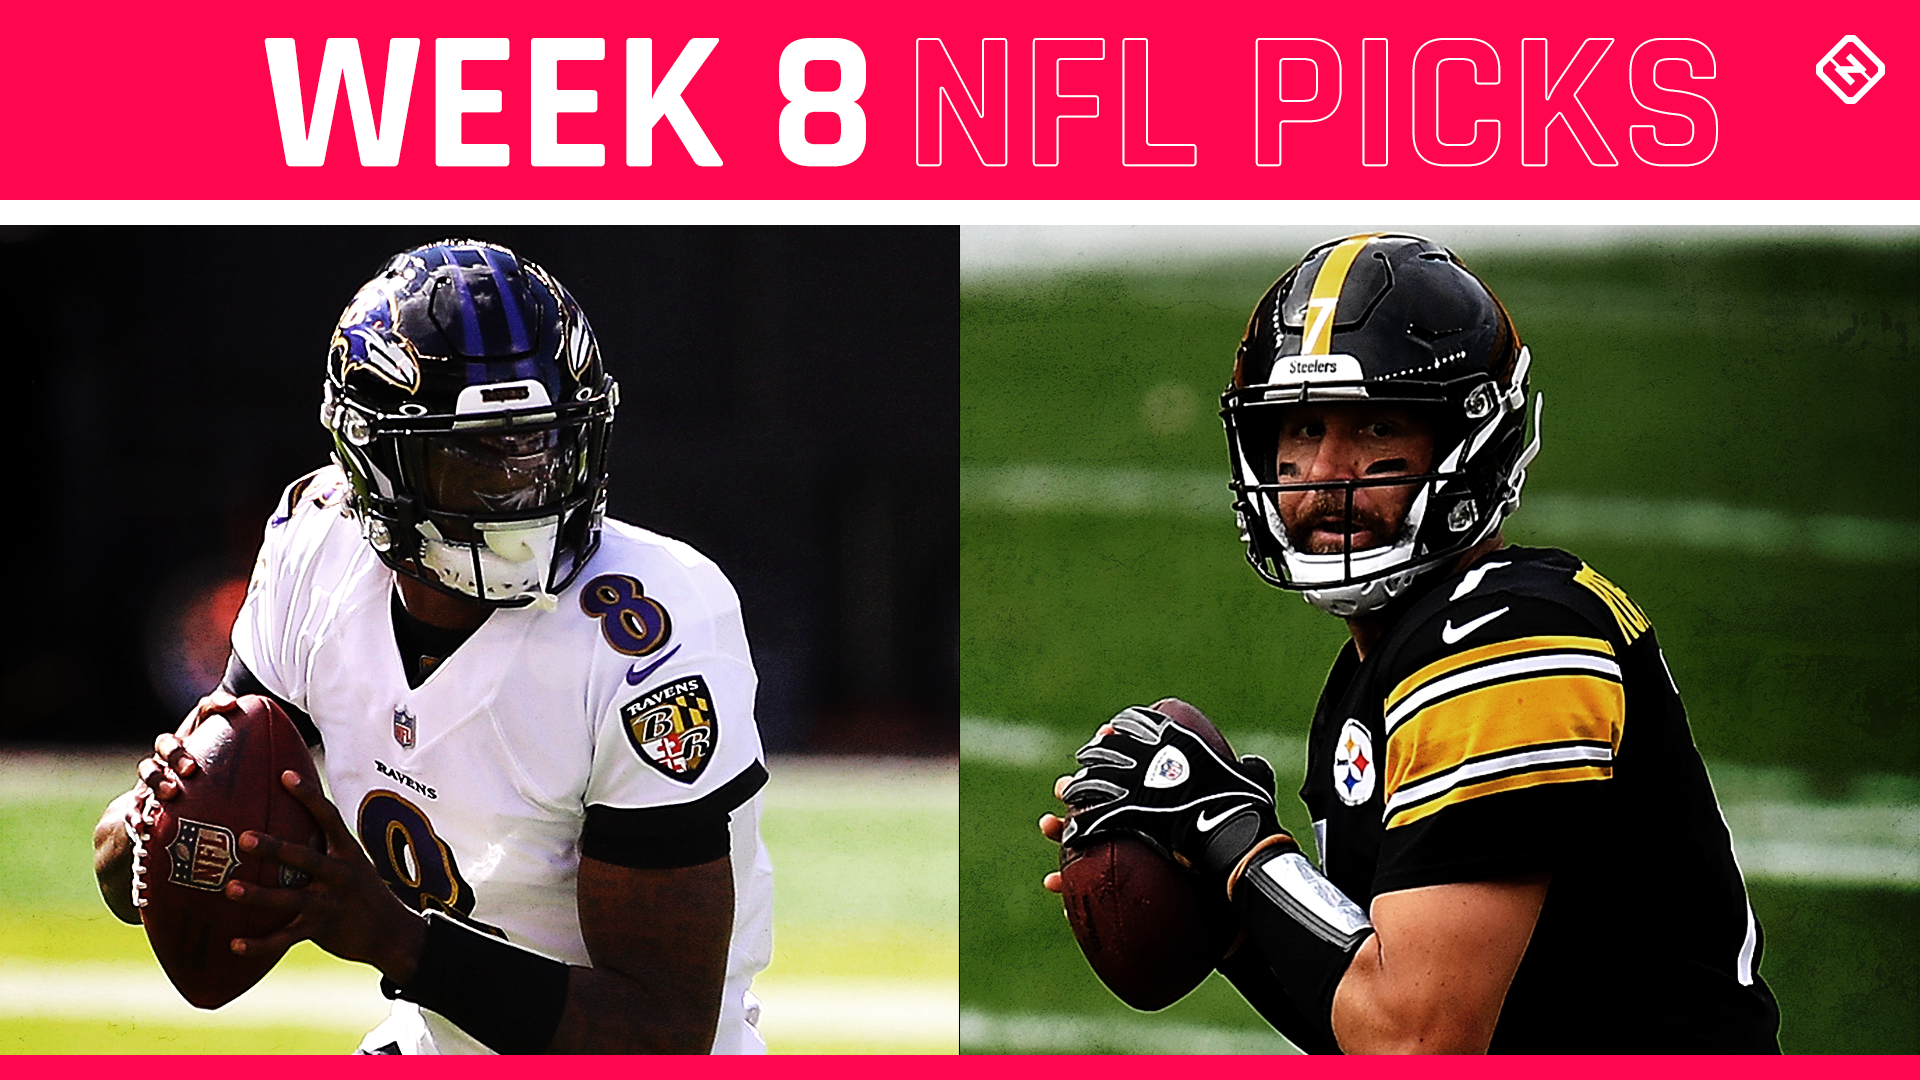 NFL picks, predictions for Week 8: Ravens hand Steelers first loss; Saints beat Bears; Browns upset